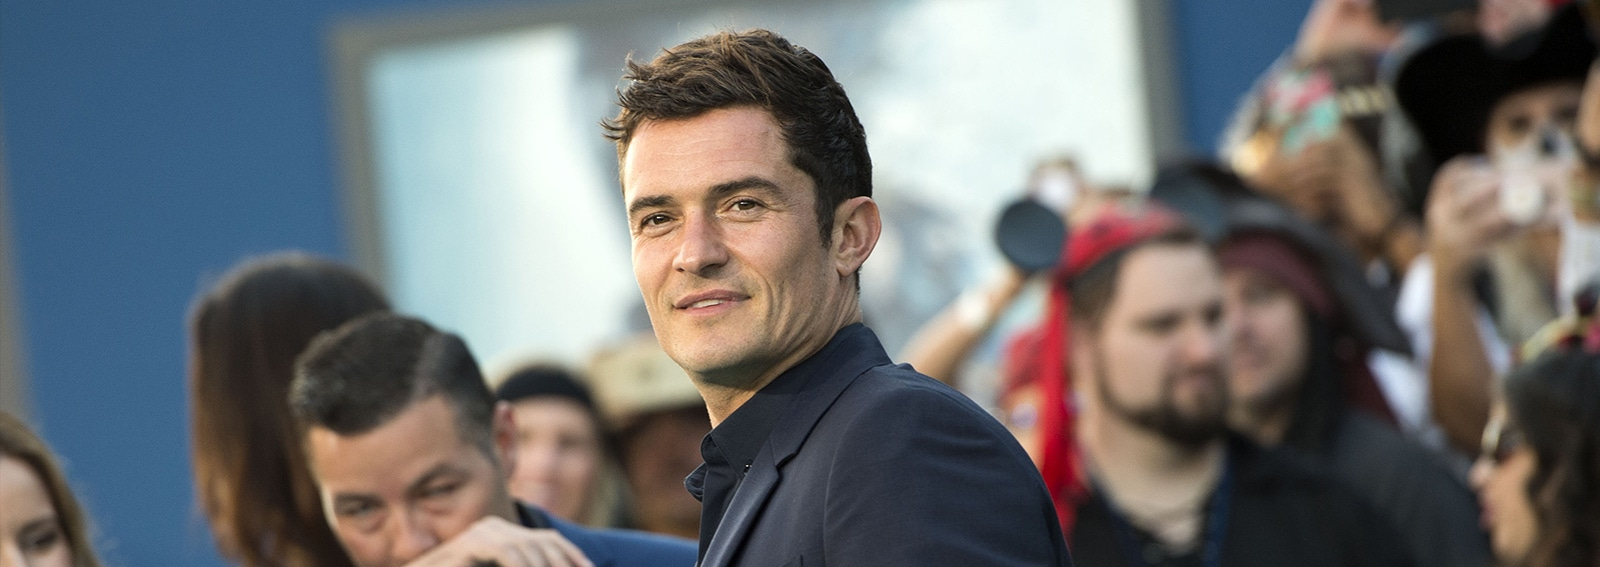 cover orlando bloom seduce cameriera desktop